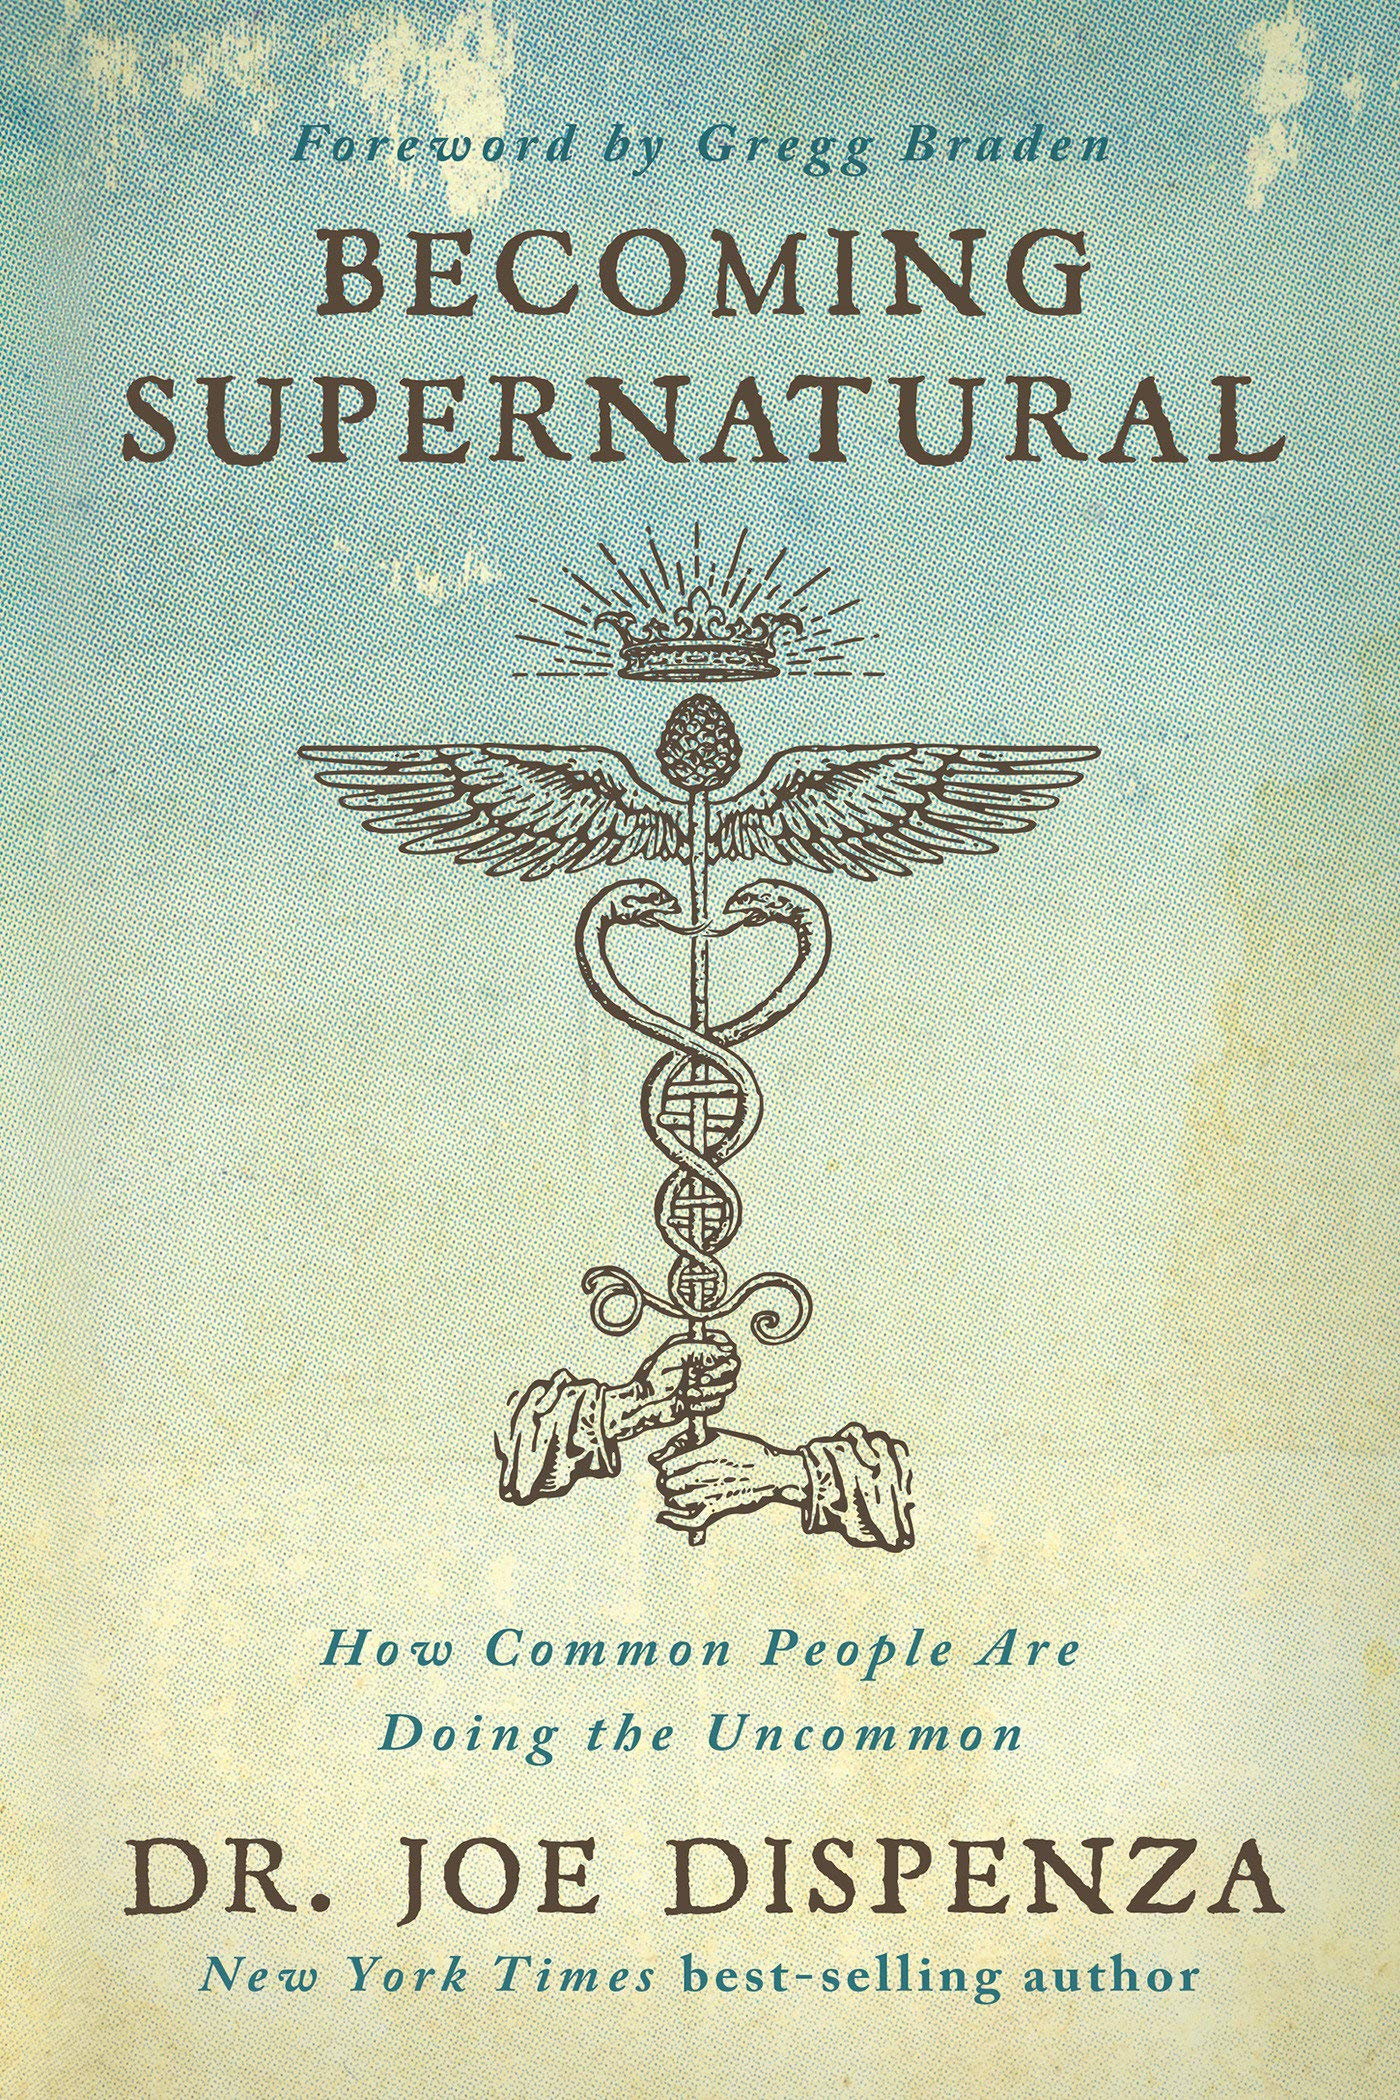 Becoming supernatural - Joe dispenza.jpg